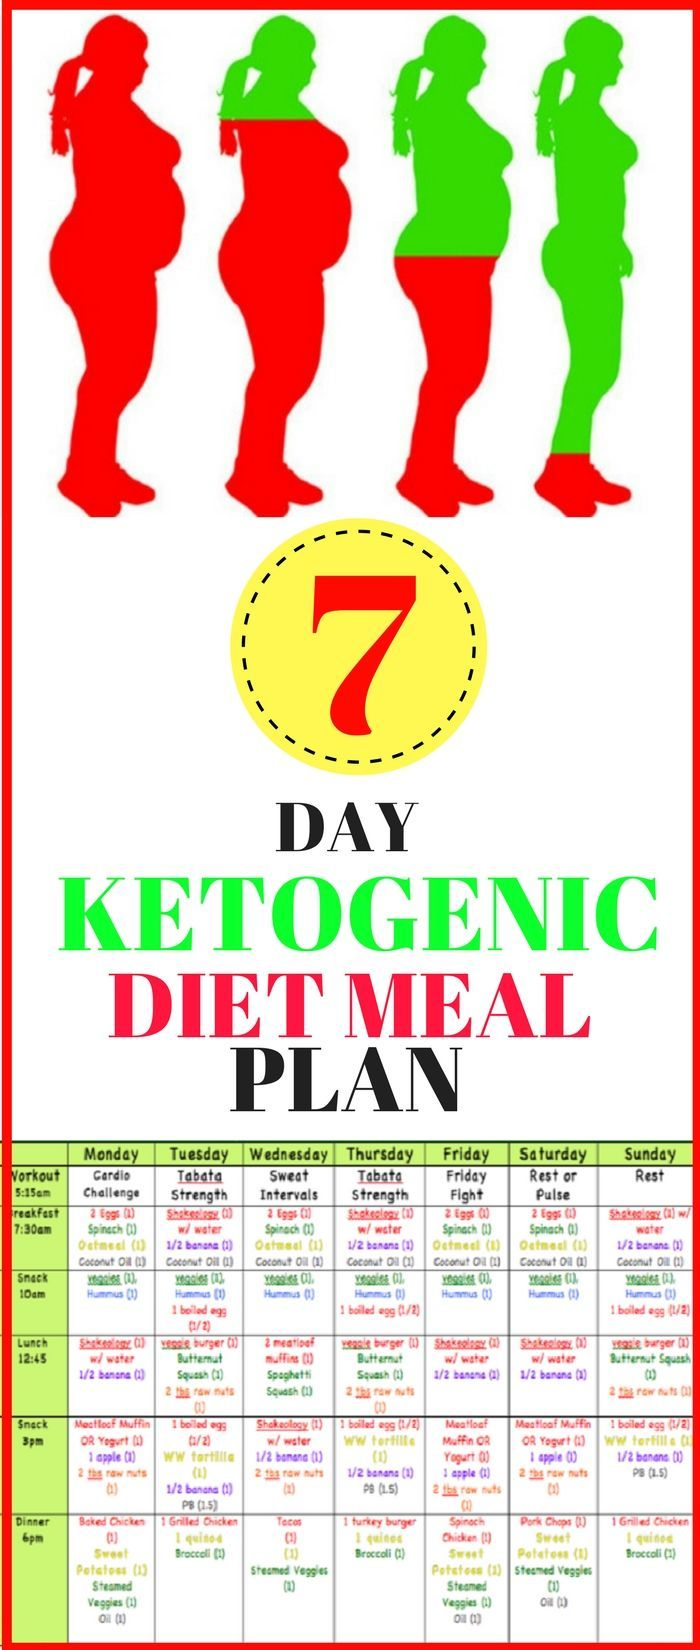 who created teh keto diet